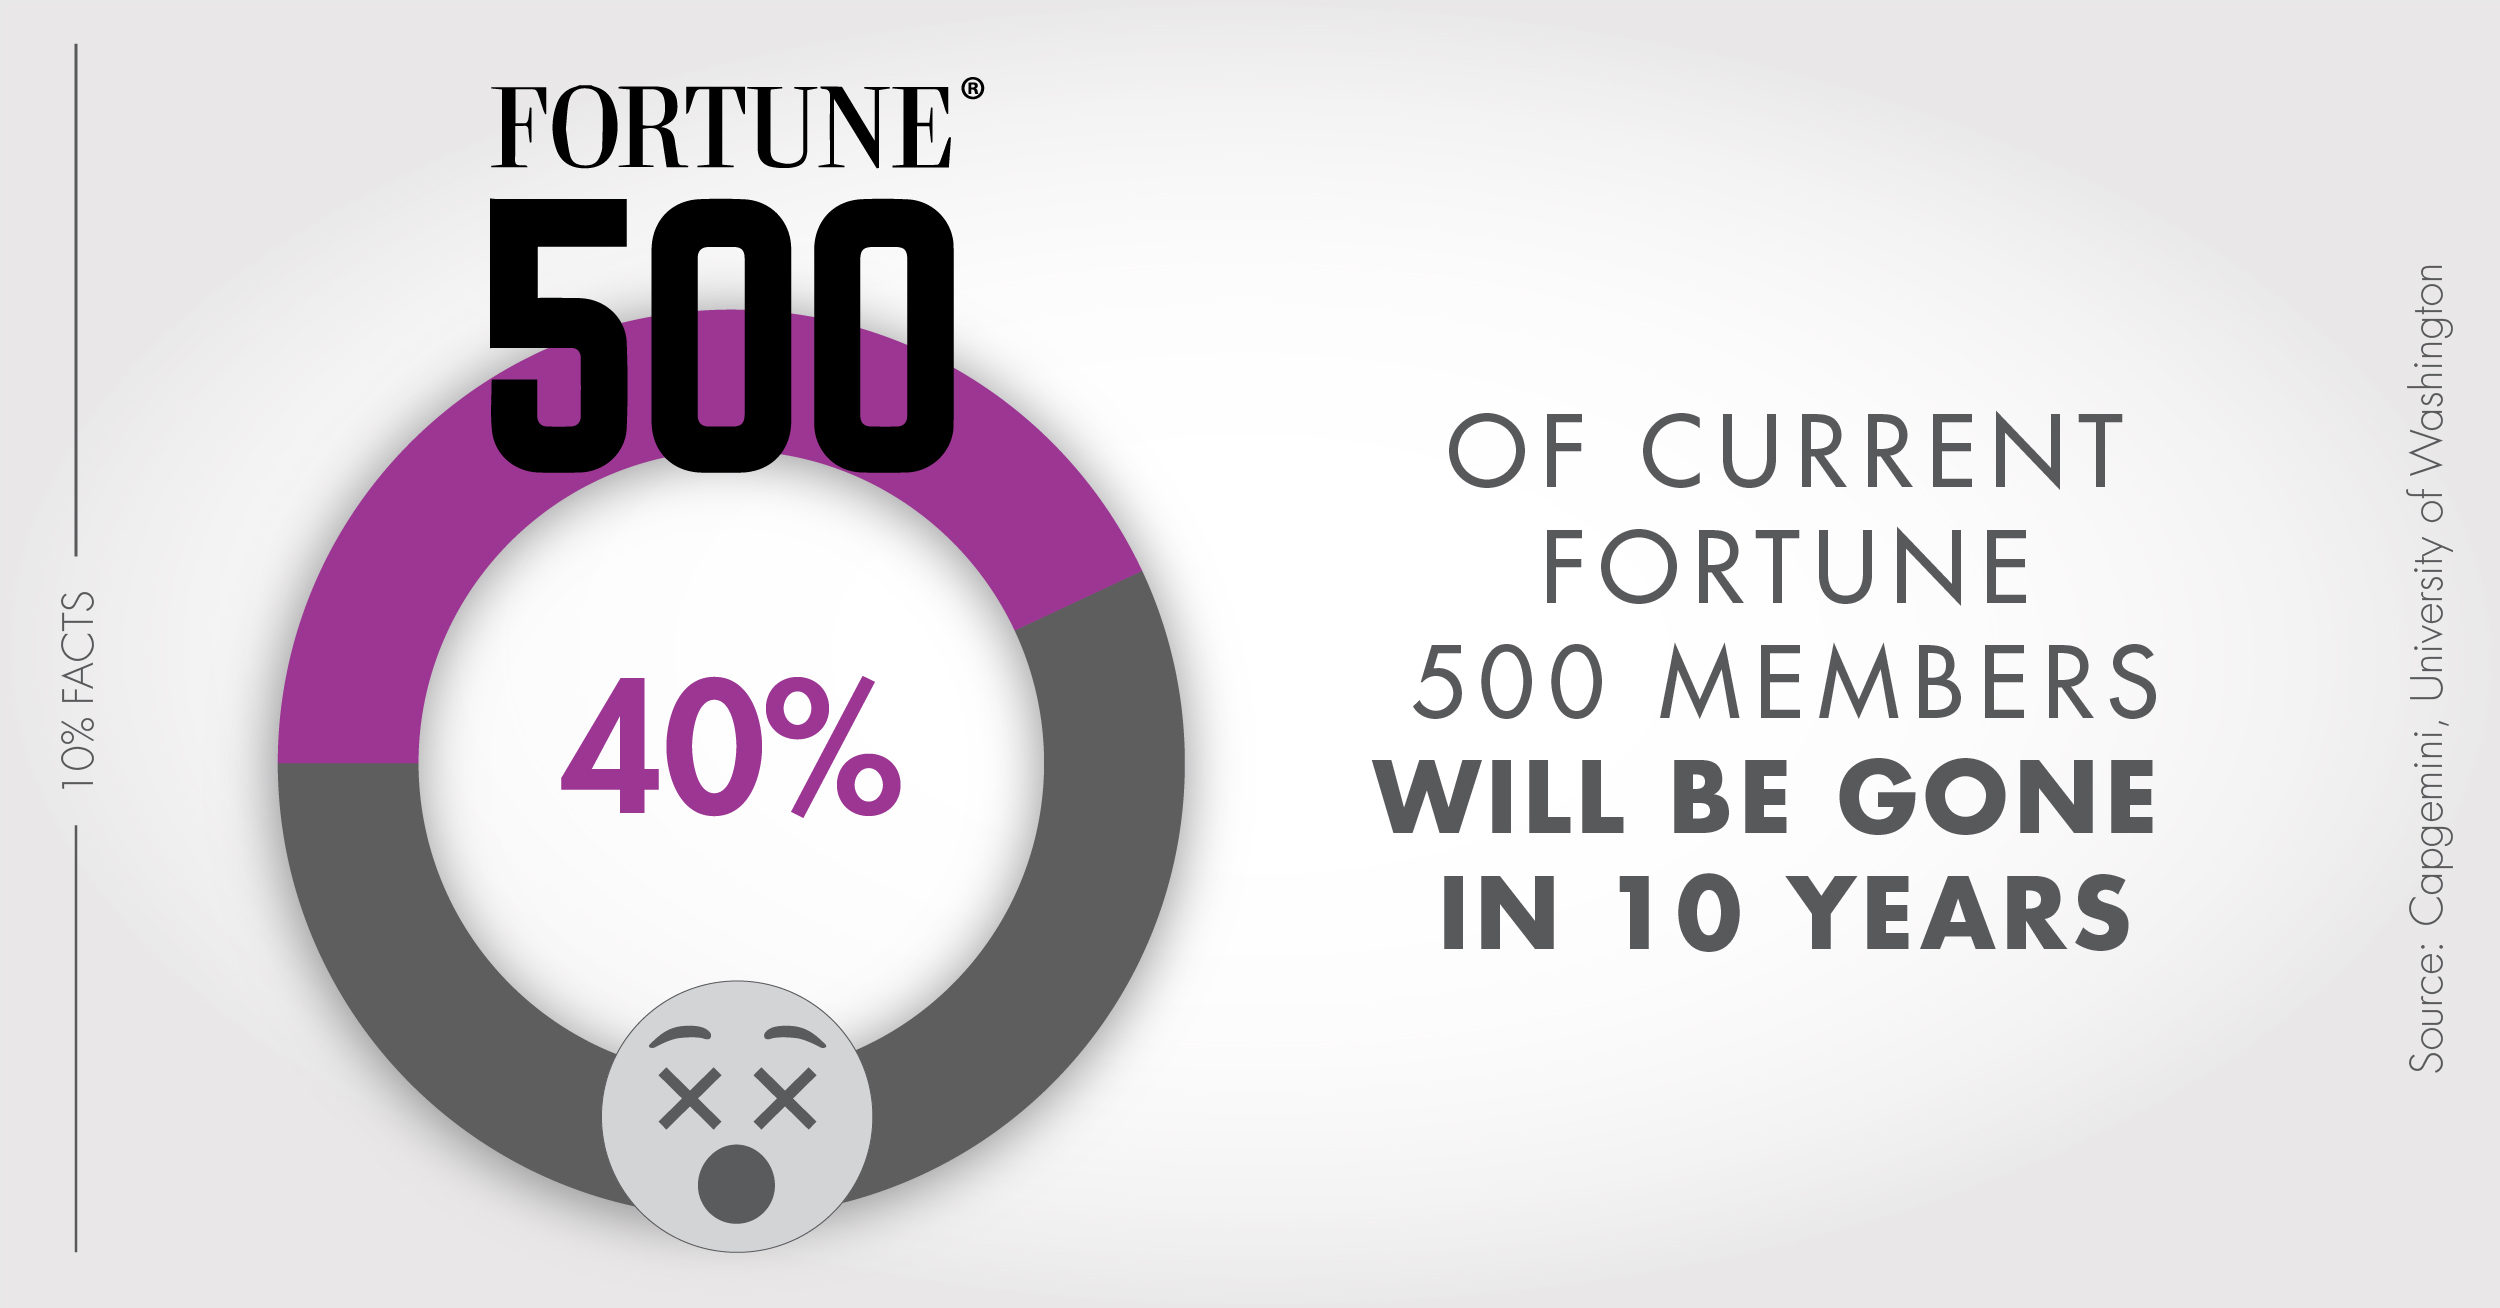 40% of current Fortune 500 members will be gone in 10 years